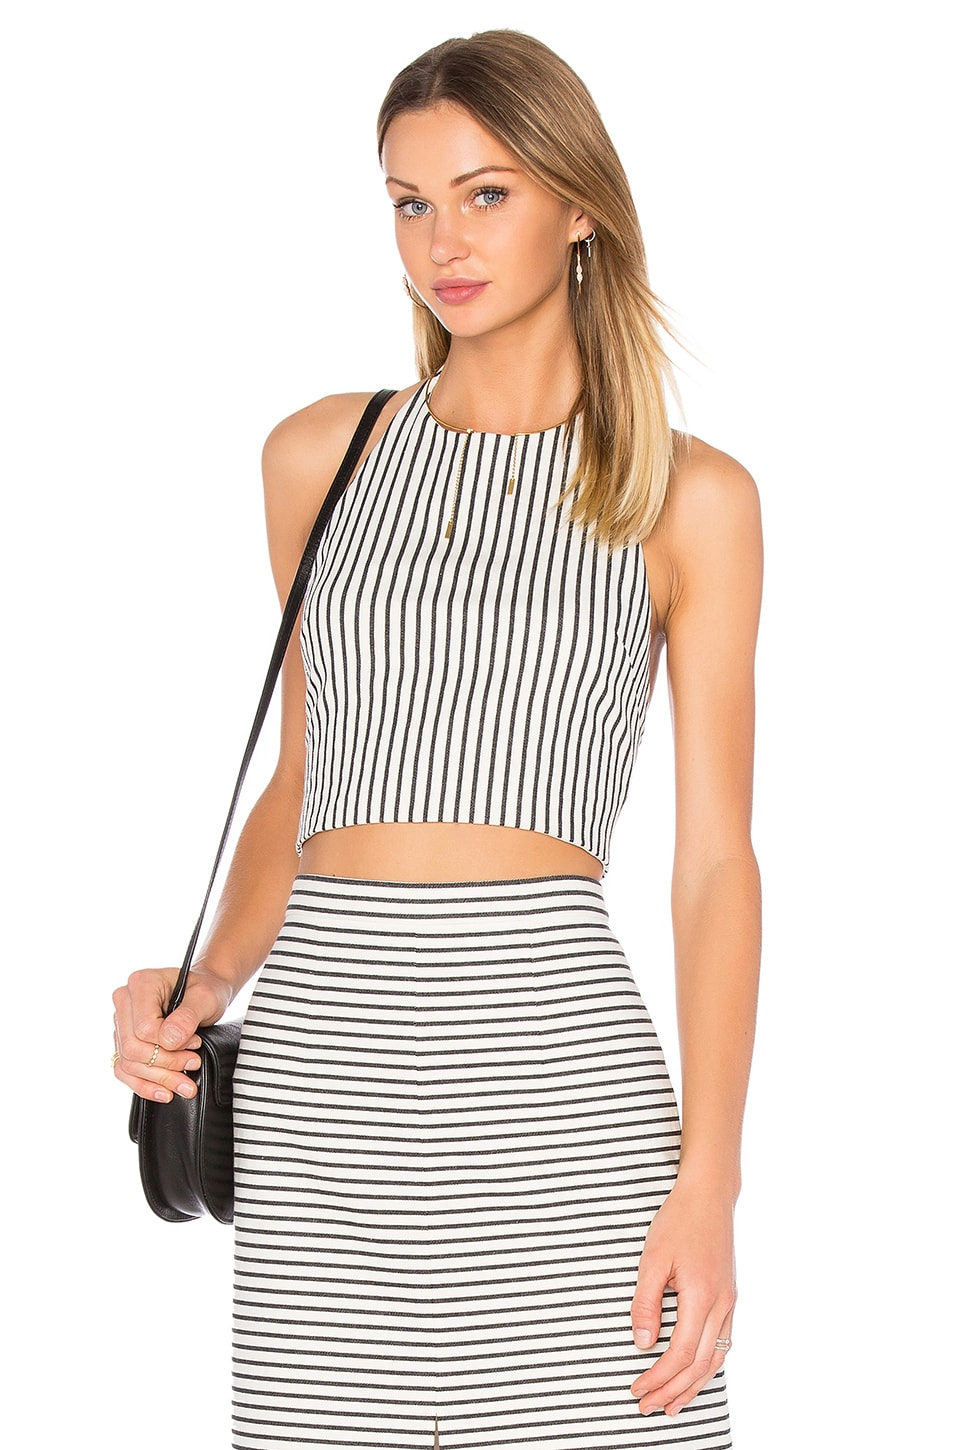 Alice + Olivia Jaymee Halter Crop Top in Cream & Black